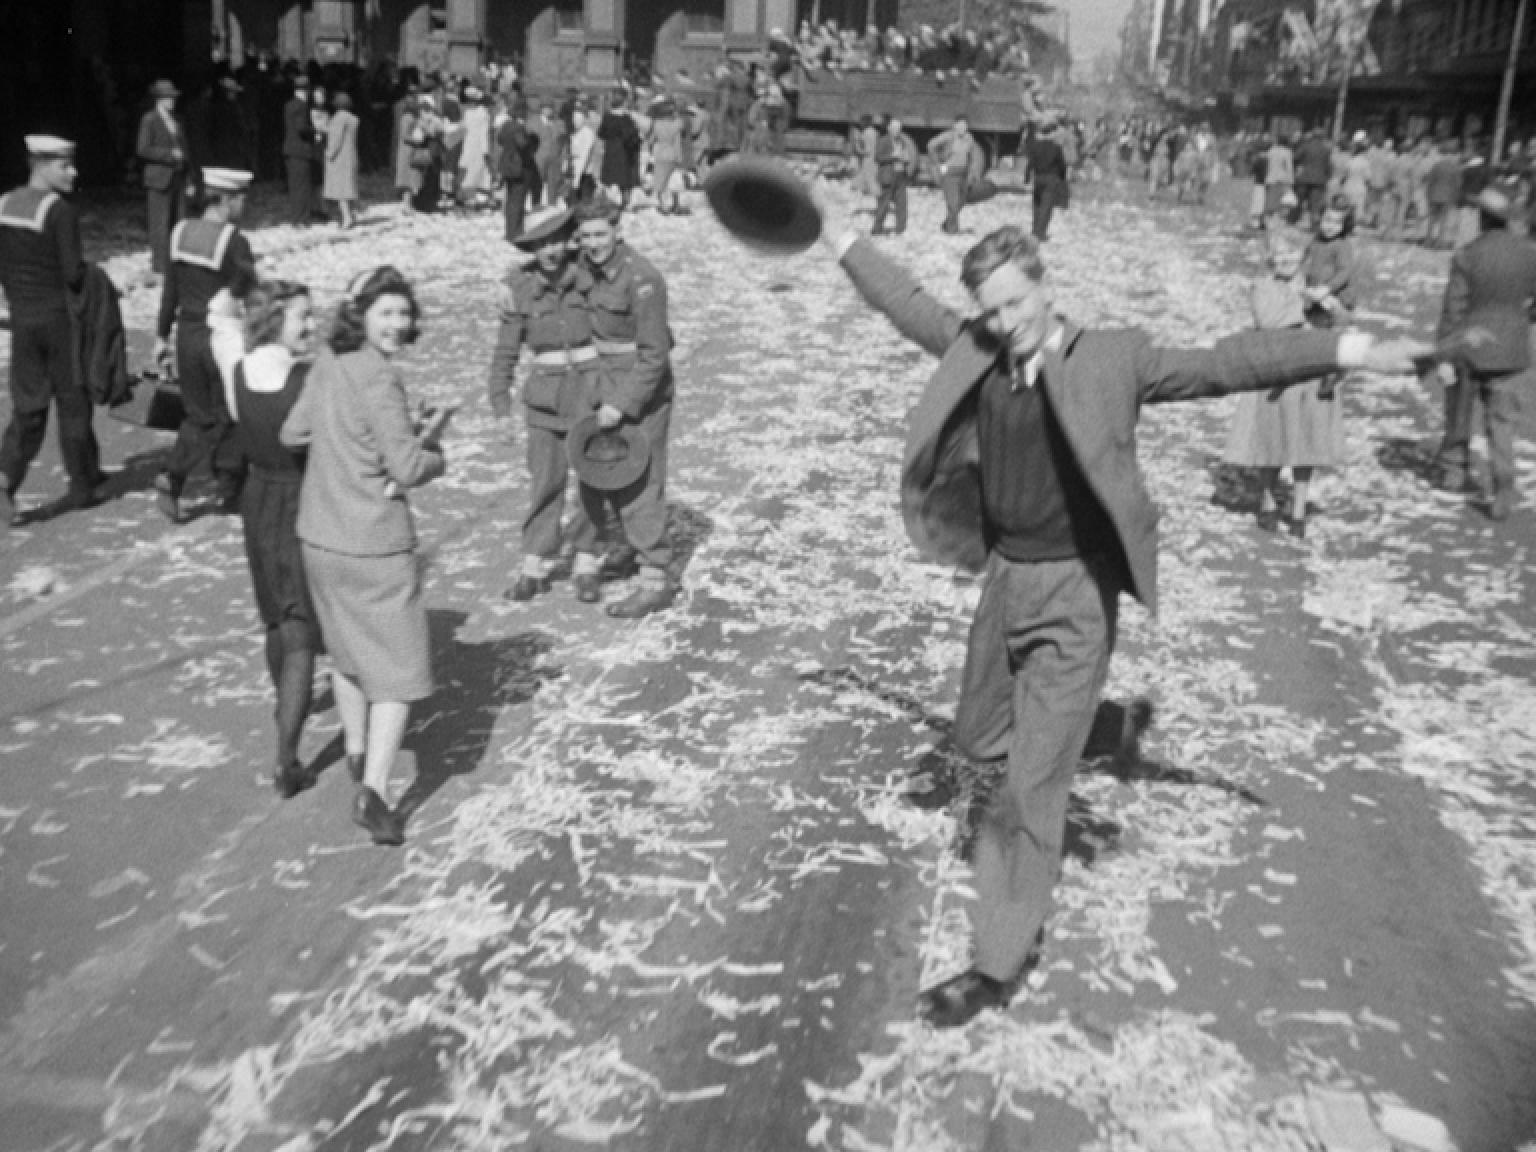 A man dances in the street to celebrate the end of the Second World War